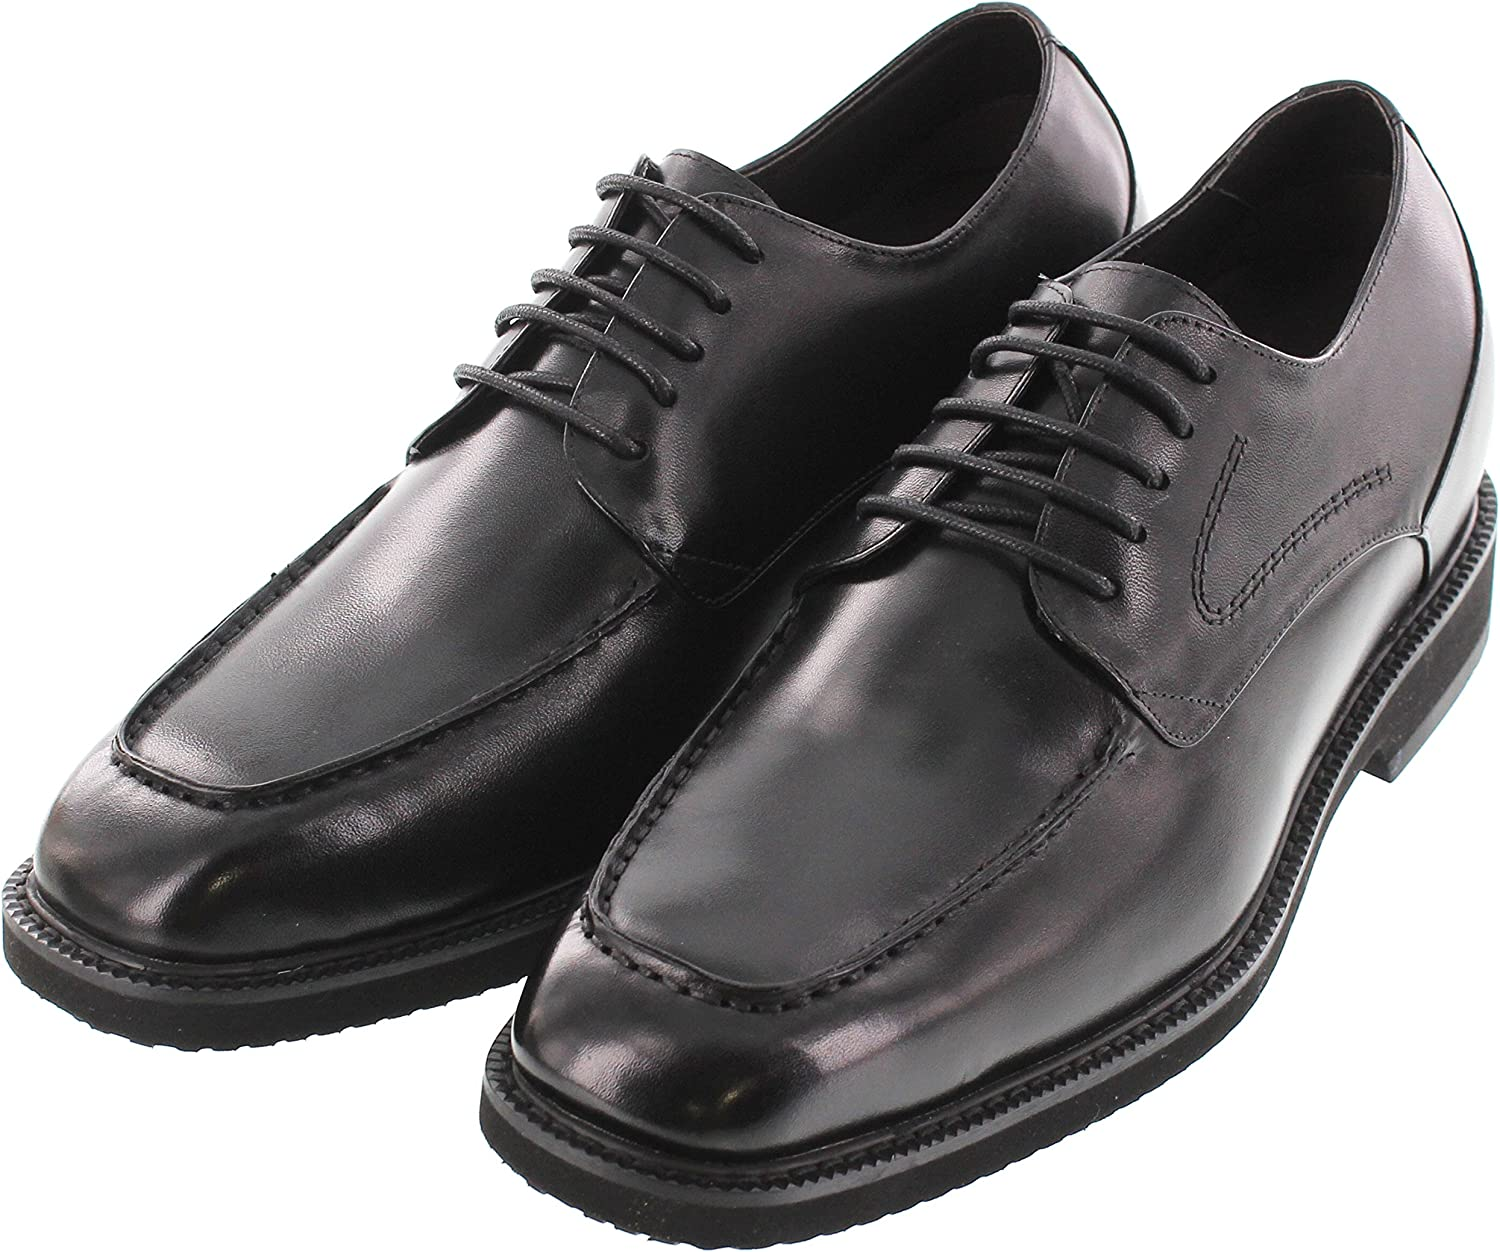 Black Leather Lace-up Formal Oxfords 2.8 Inches Taller TOTO Mens Invisible Height Increasing Elevator Shoes X67012